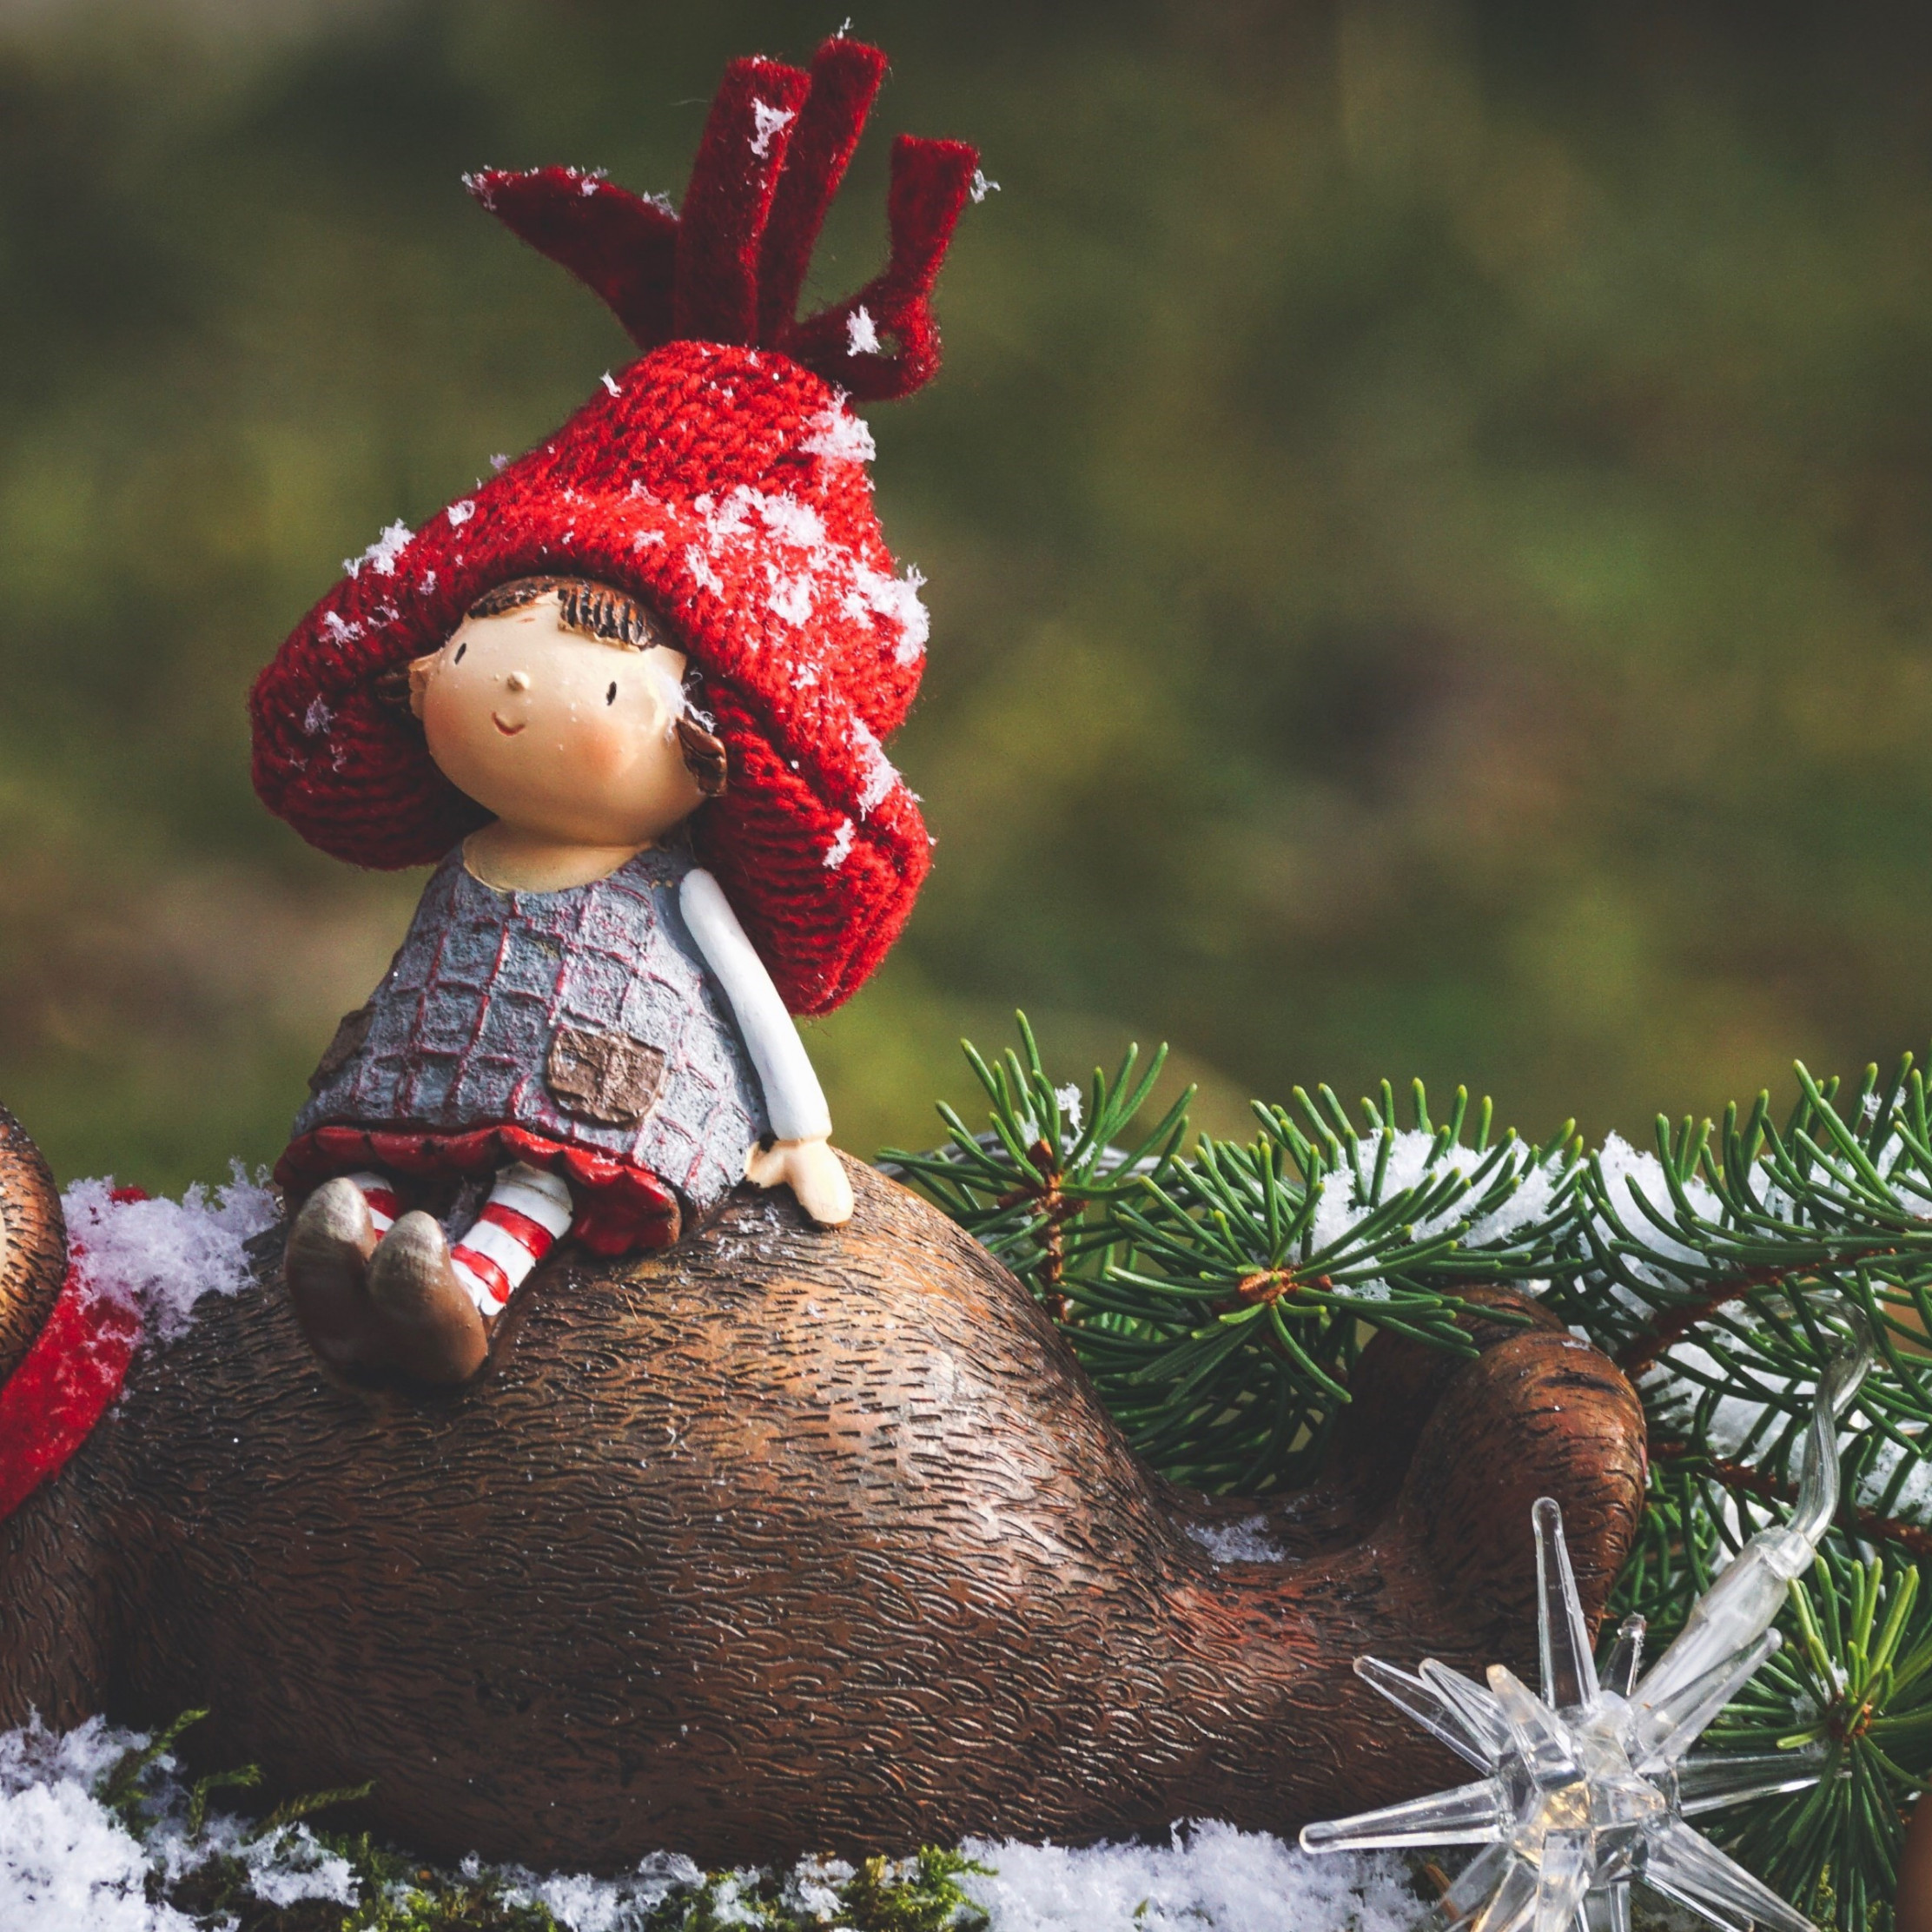 Cute Christmas decoration wallpaper 2224x2224